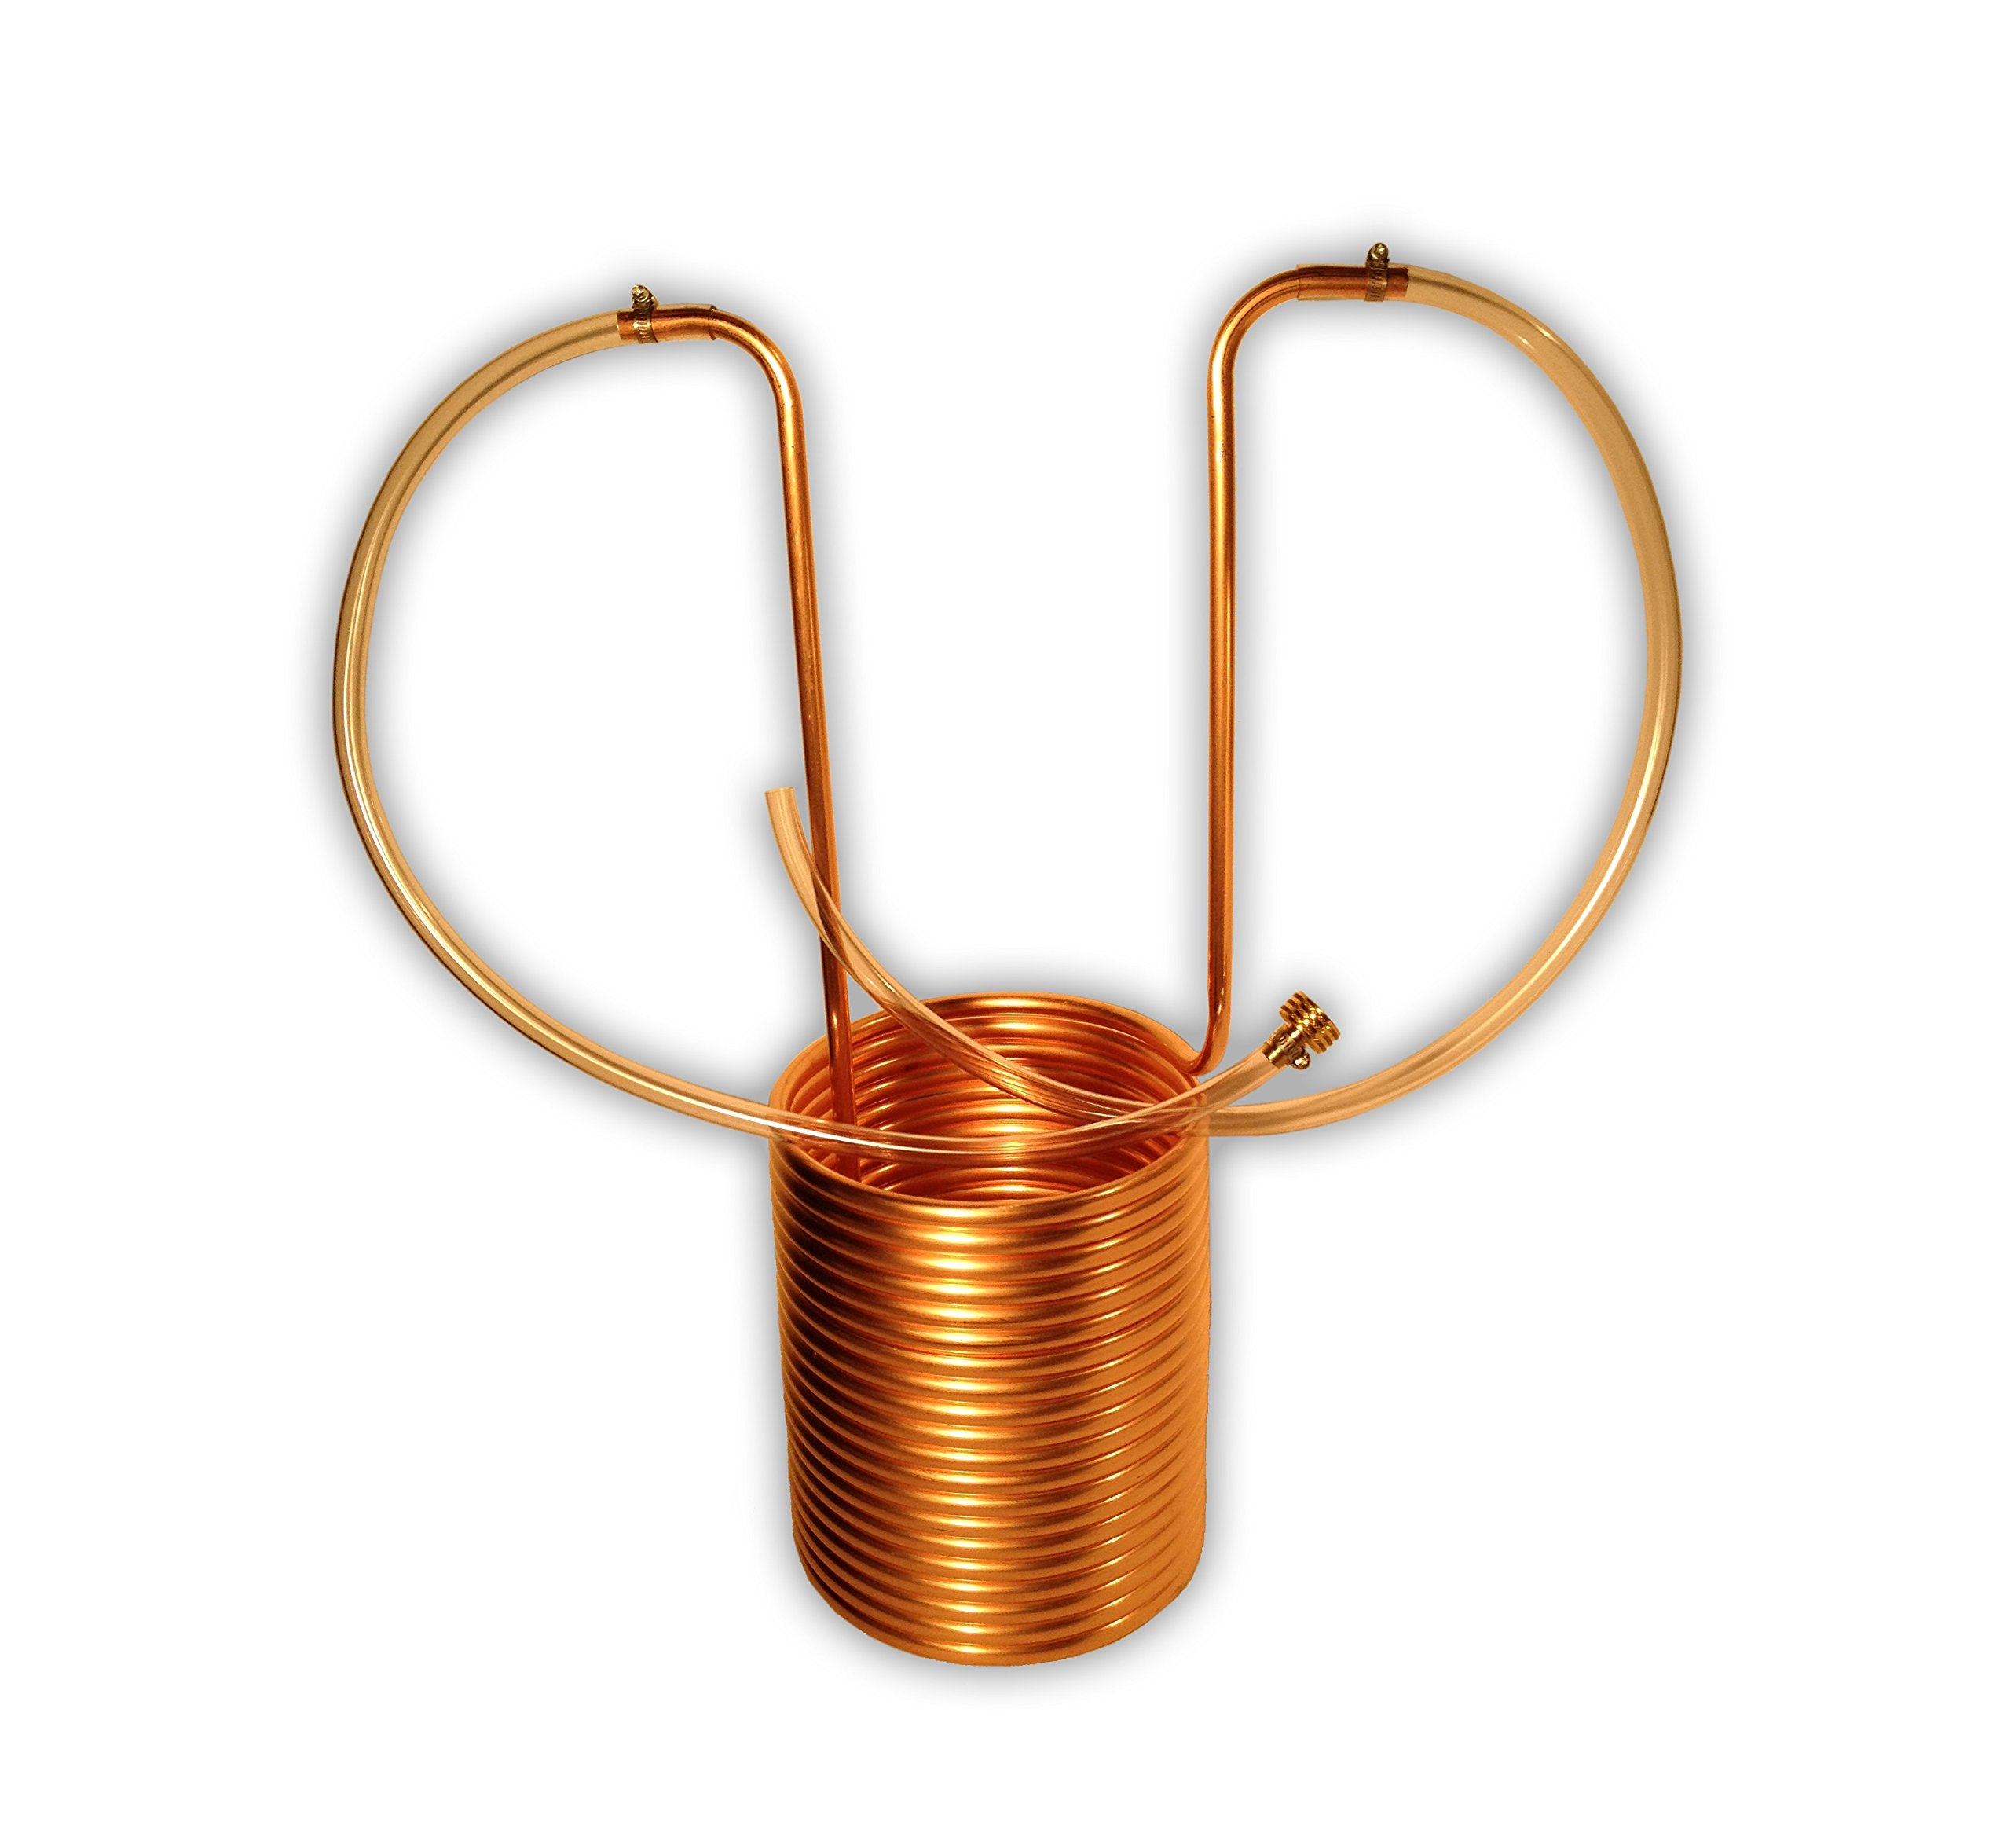 Coldbreak Brewing Equipment CB21250COV Wort Chiller with Vinyl Tubing and Garden Hose Fitting, 50', 1/2'' Keggle Immersion, 0.44'' ID, 0.5'' OD, GHT Female, Copper